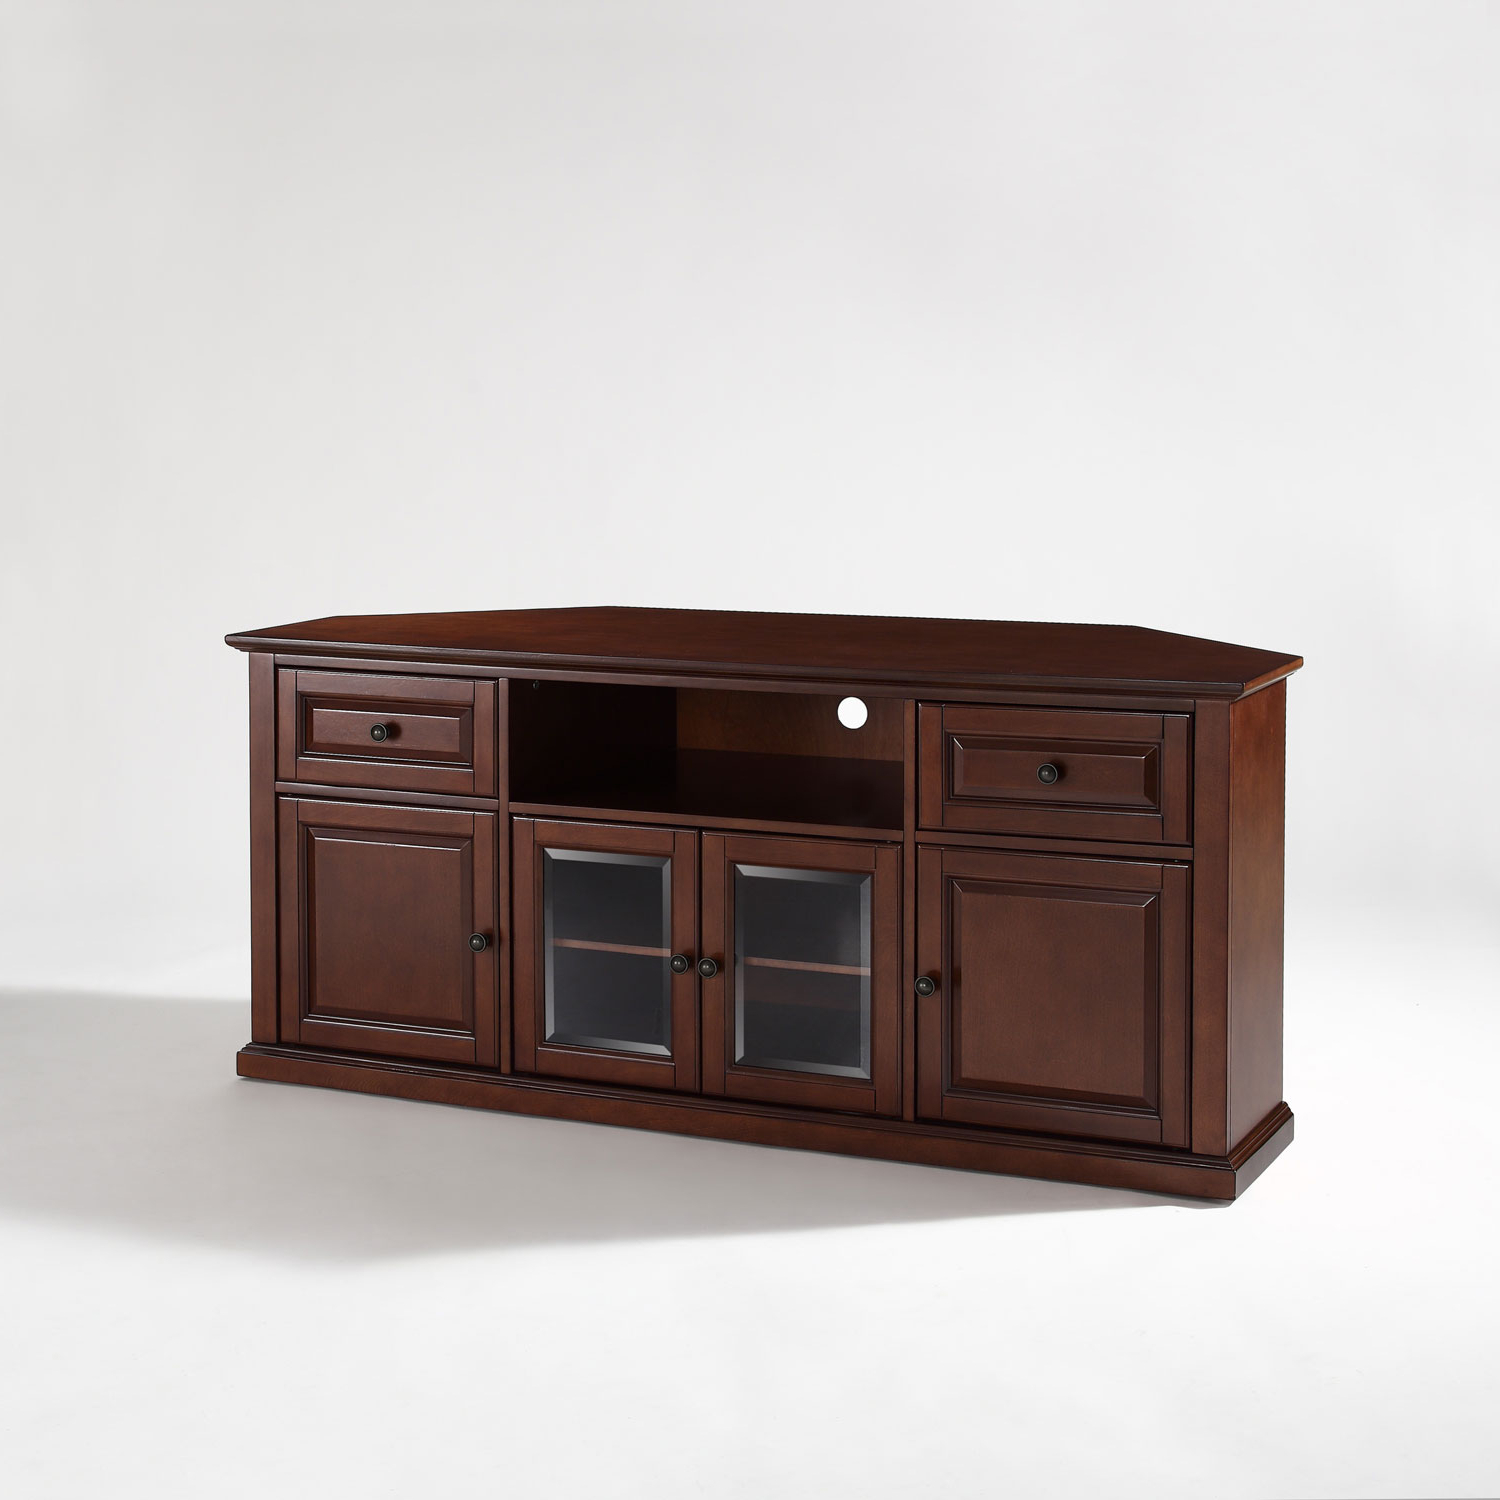 Mahogany Tv Stands Regarding Recent Corner Tv Stand In Crosley Furniture Inch Vintage Mahogany Plans (View 10 of 20)